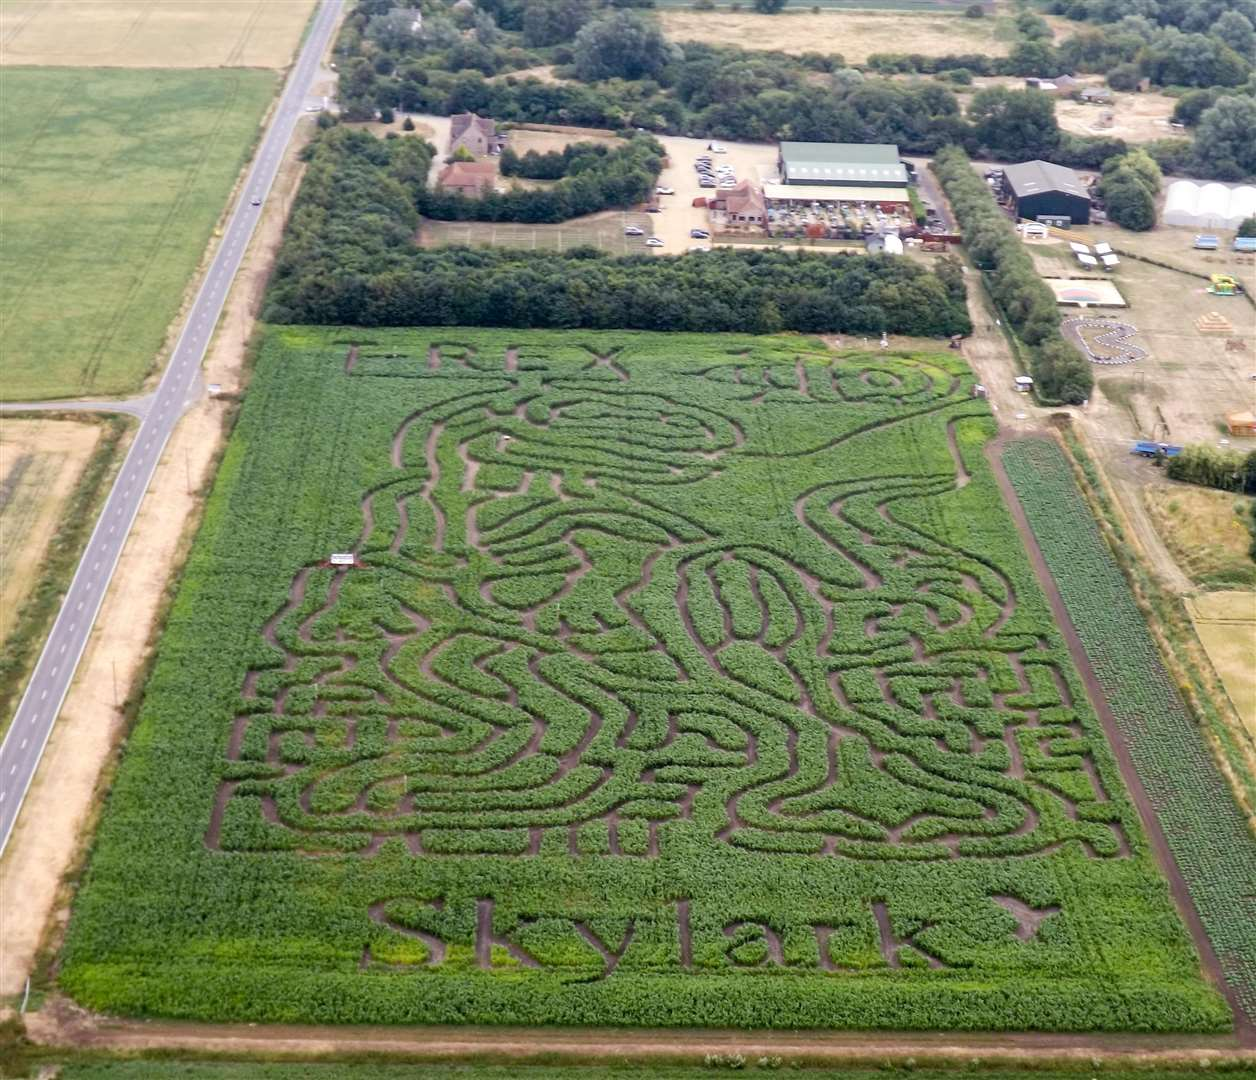 The view of the new T-Rex shaped maize maze at Skylark captured from a helicopter. (3047043)